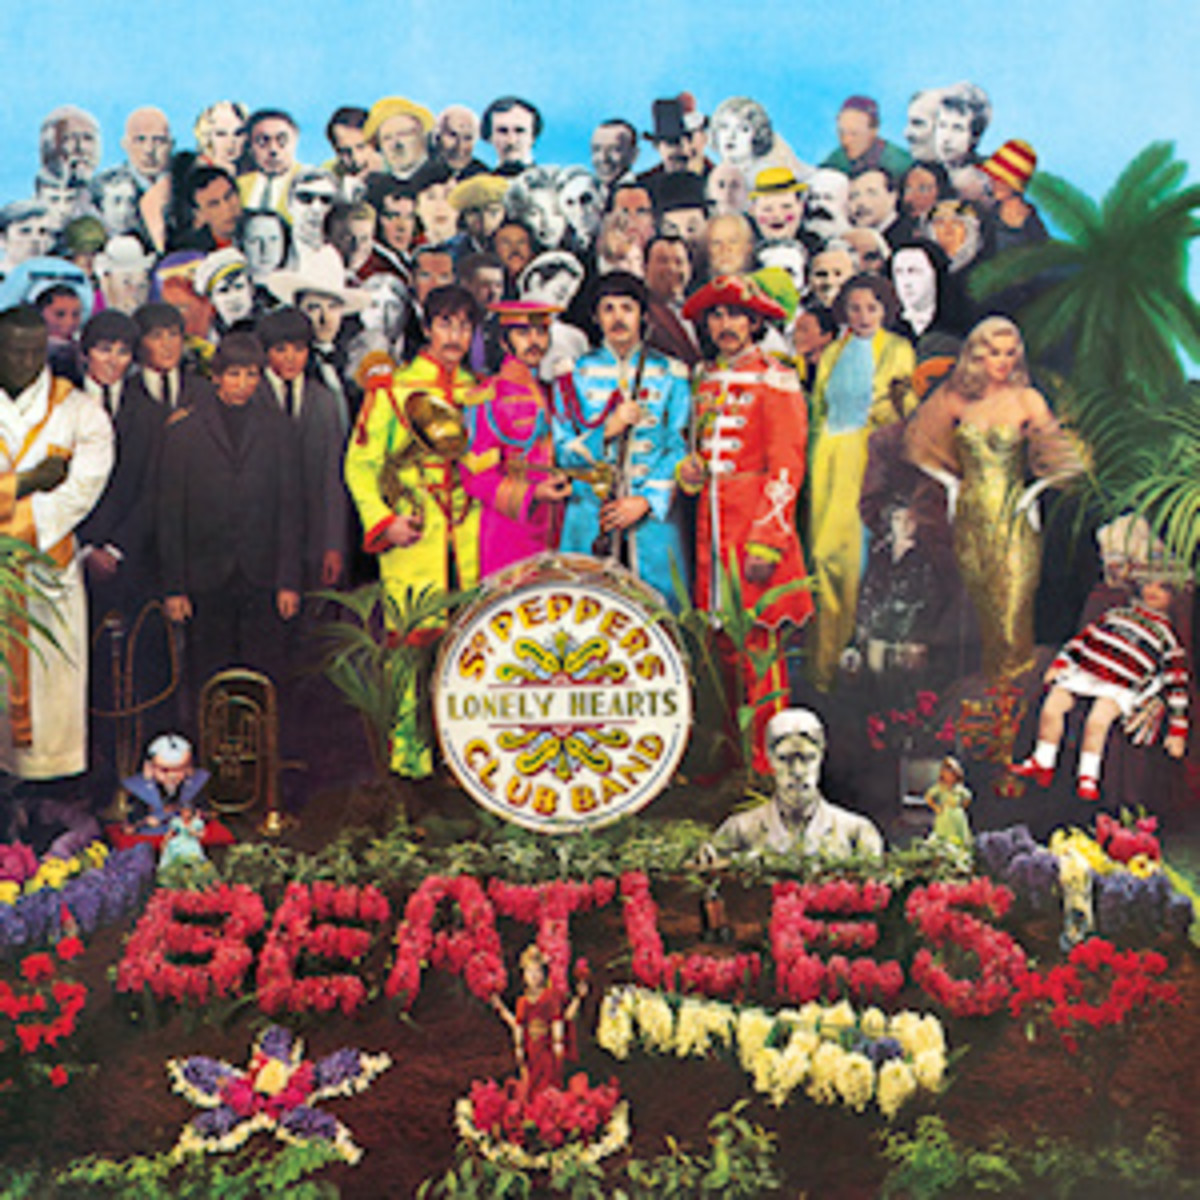 Sgt. Pepper's Lonely Hearts Club Band. The most famous cover of any album ever in history.